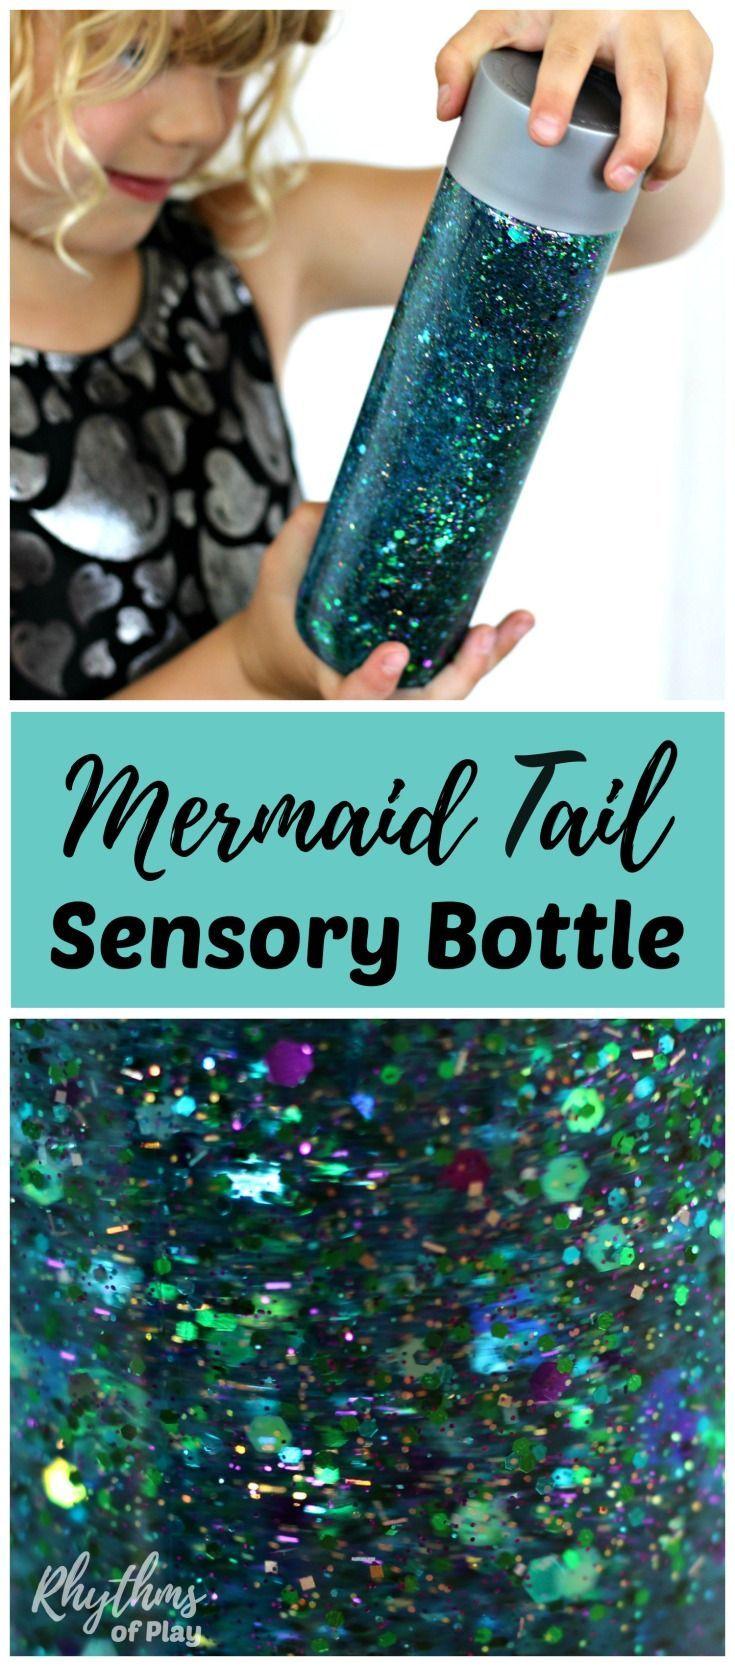 Learn how to make your own glittering mermaid tail sensory bottle! Calm down discovery jars like this glitter sensory bottle can be used for portable no mess safe sensory play, calming an overwhelmed child, and helping children learn to self-regulate. Babies, toddlers, and preschoolers can safely investigate a soothing glittering objectwithout the risk of choking.